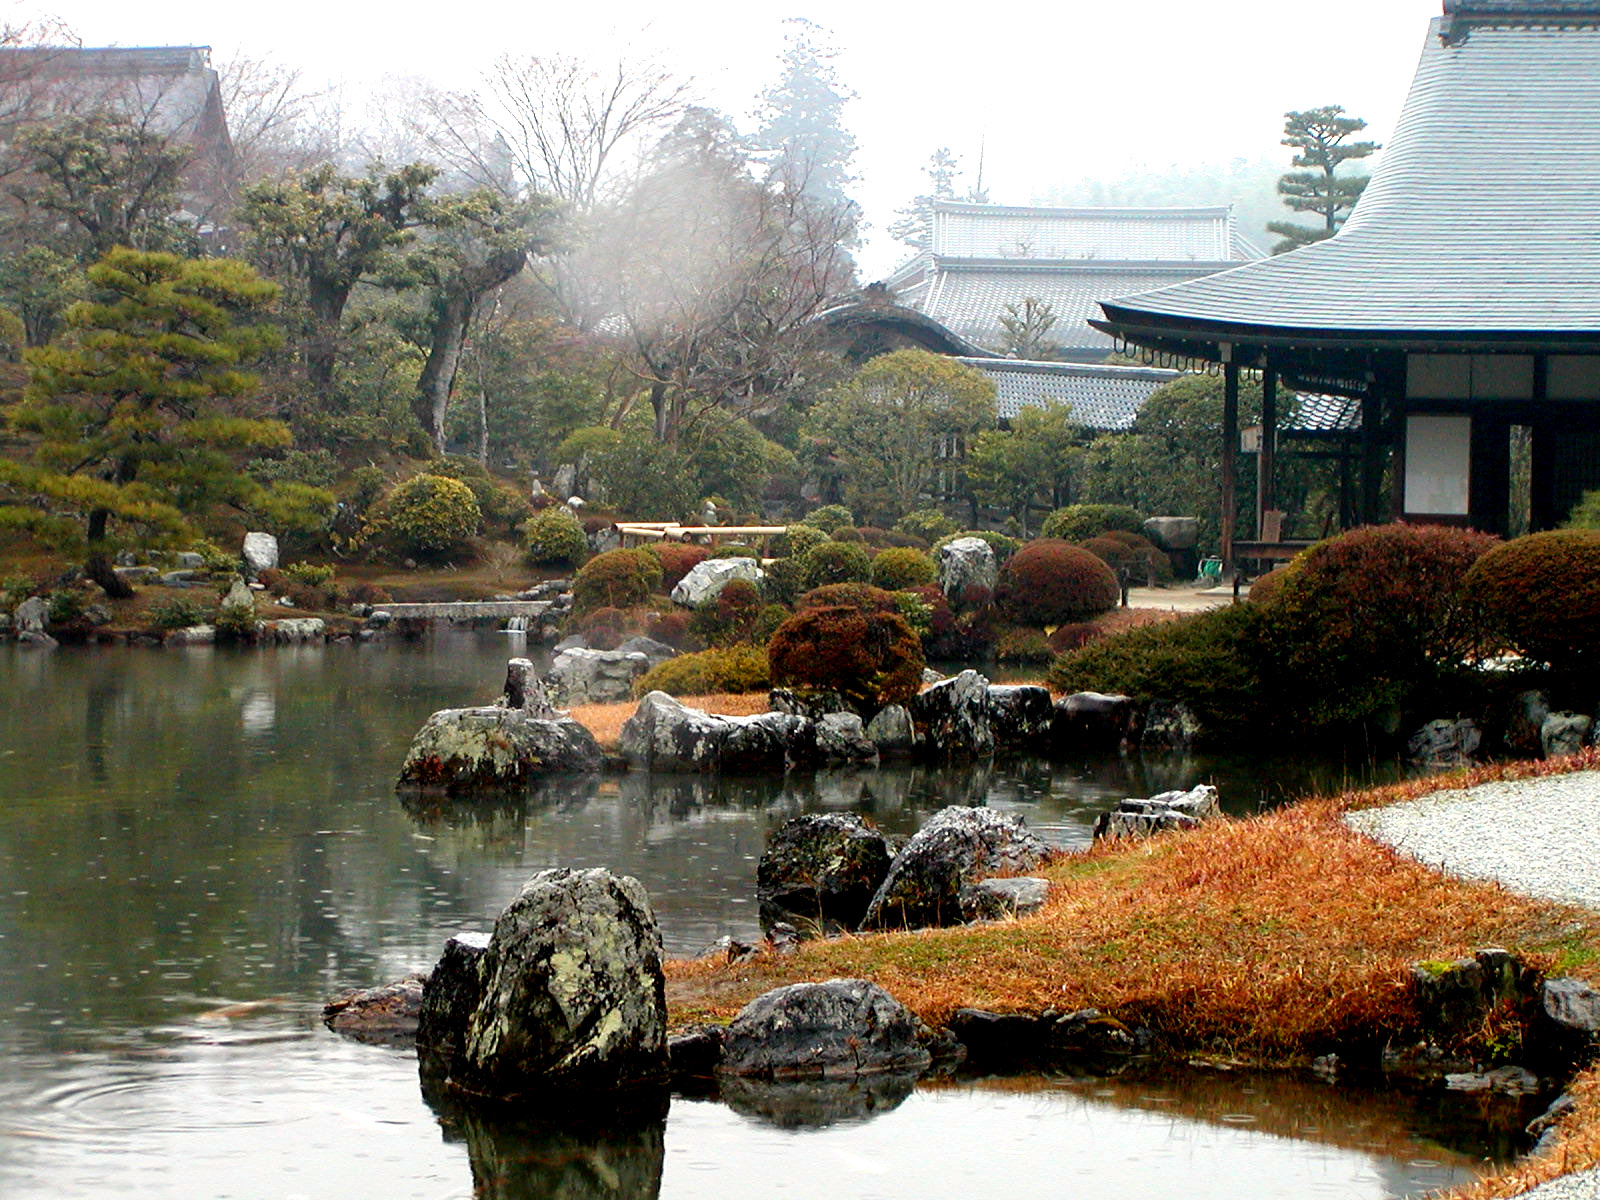 Kyoto Japan  City pictures : Temple In Japanese Kyoto Gardens 750x421 Beautiful Kyoto Gardens Japan ...